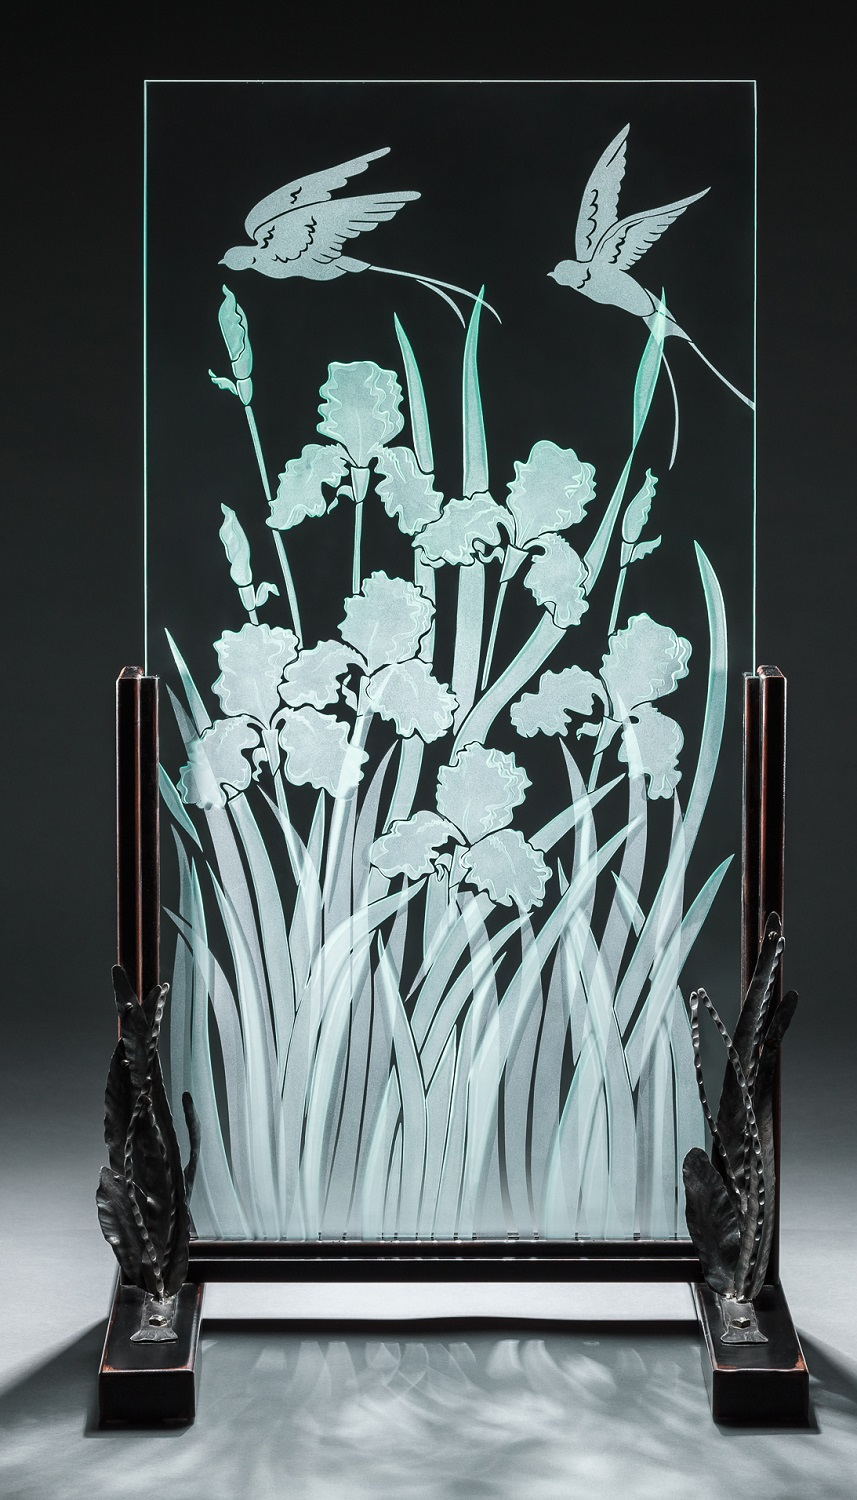 Sand blasted glass iris